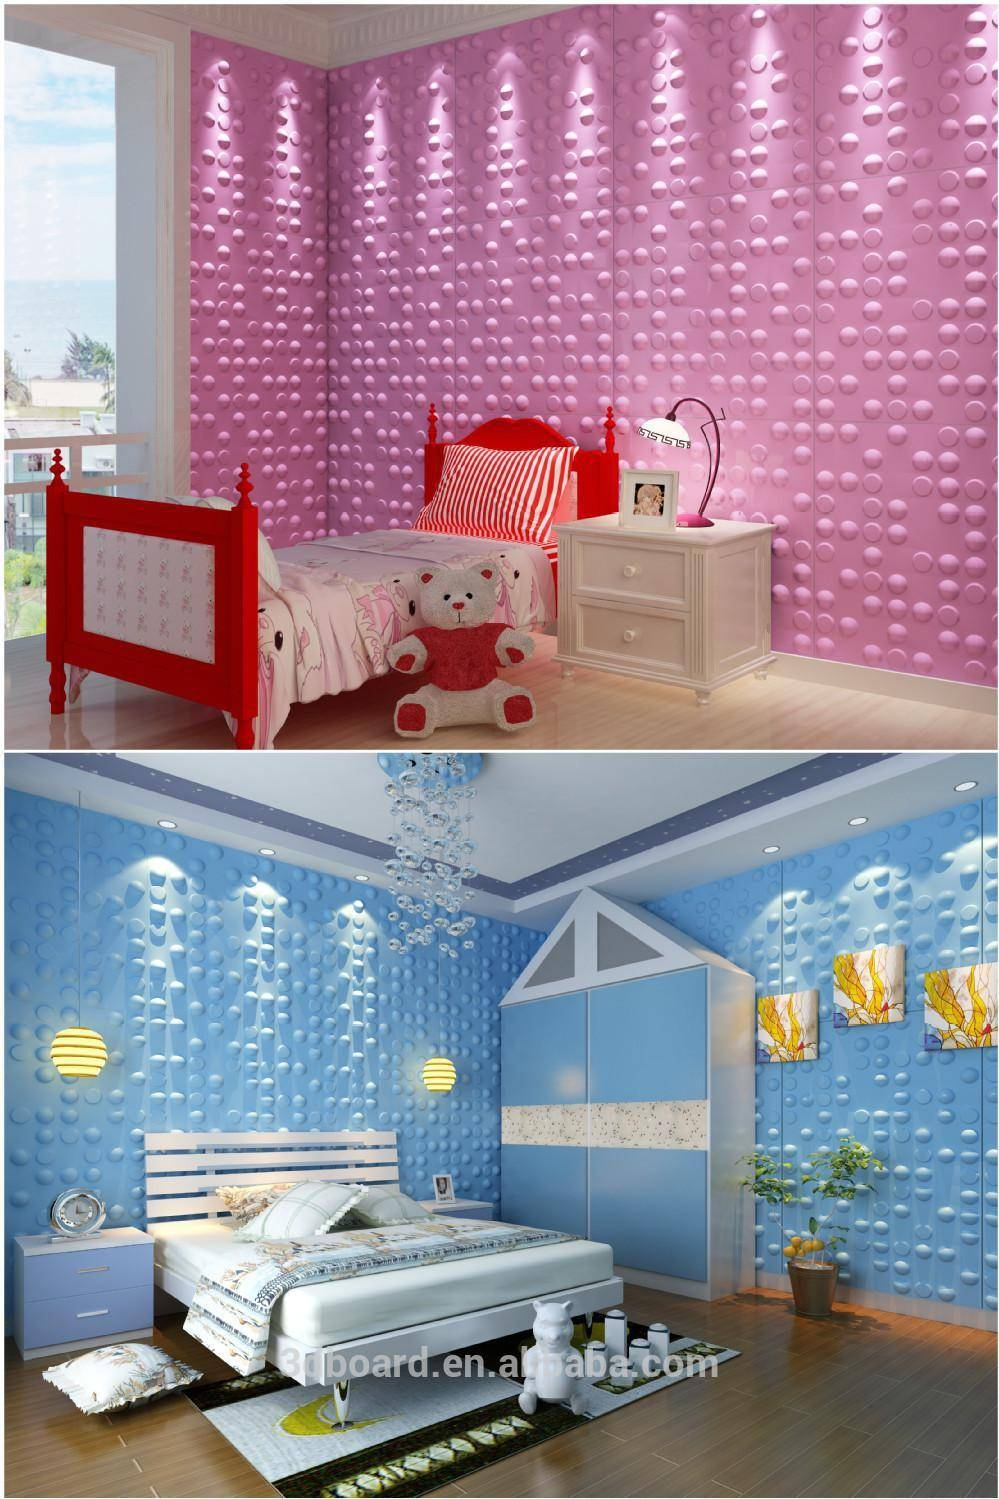 120Th Canton Fair Created New Design 3D Texture Wall Panel 3D Wall Intended For Newest South Africa Wall Art 3D (View 17 of 20)